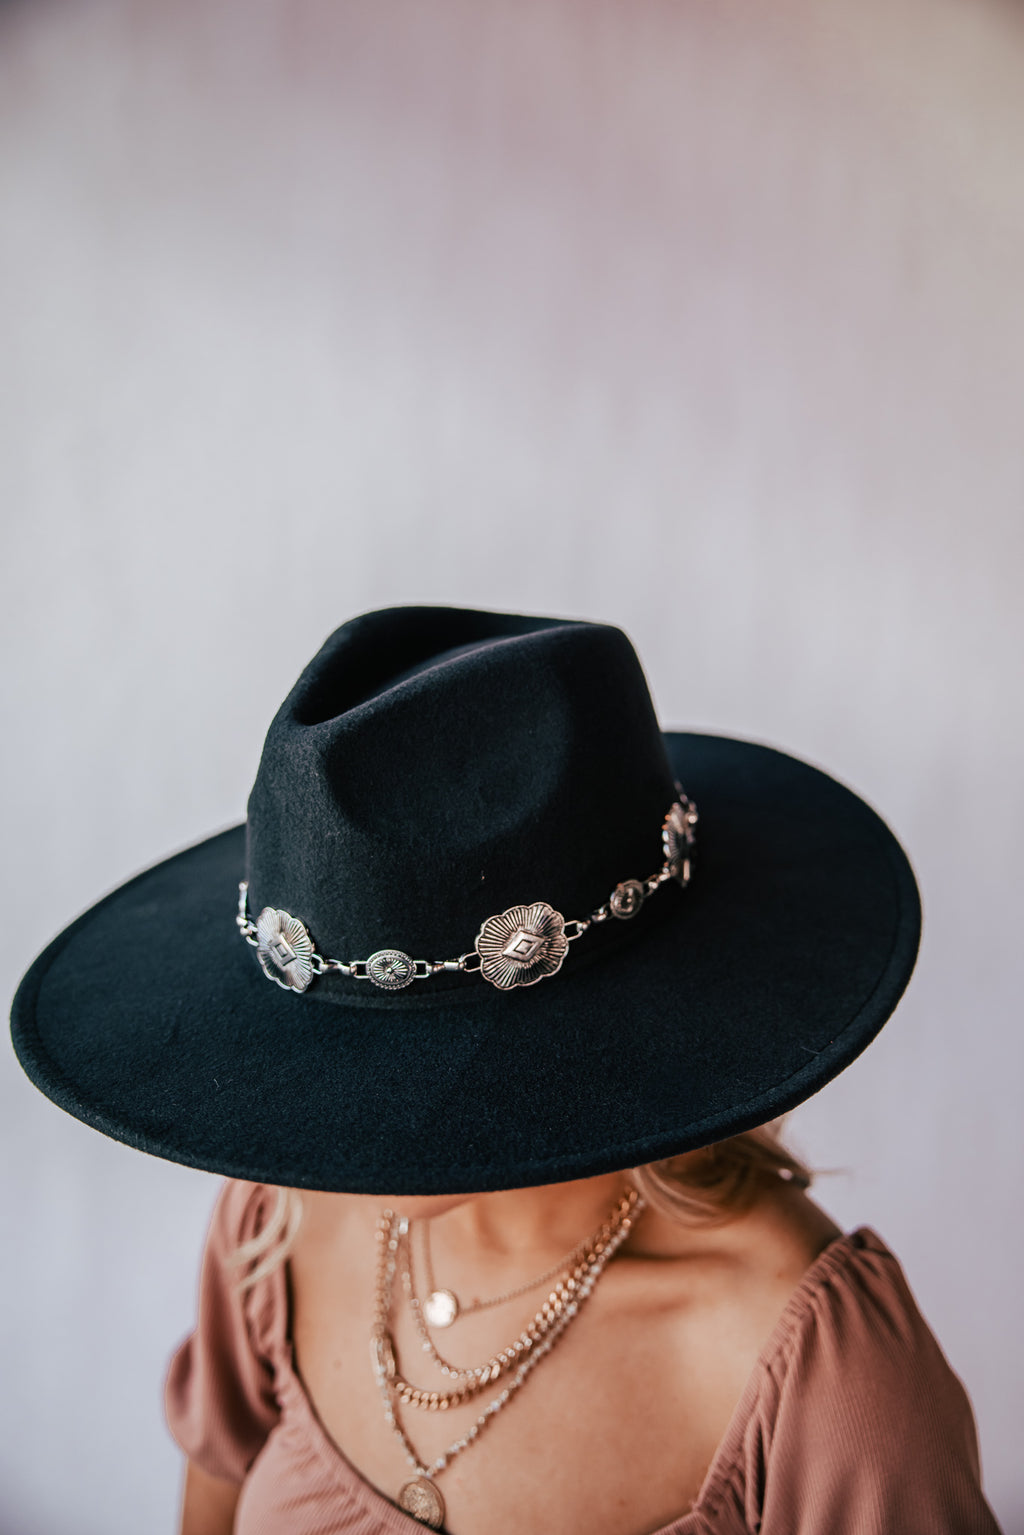 Joshua Tree Wide Brim Hat (Black) PRE-ORDER Ships Mid April